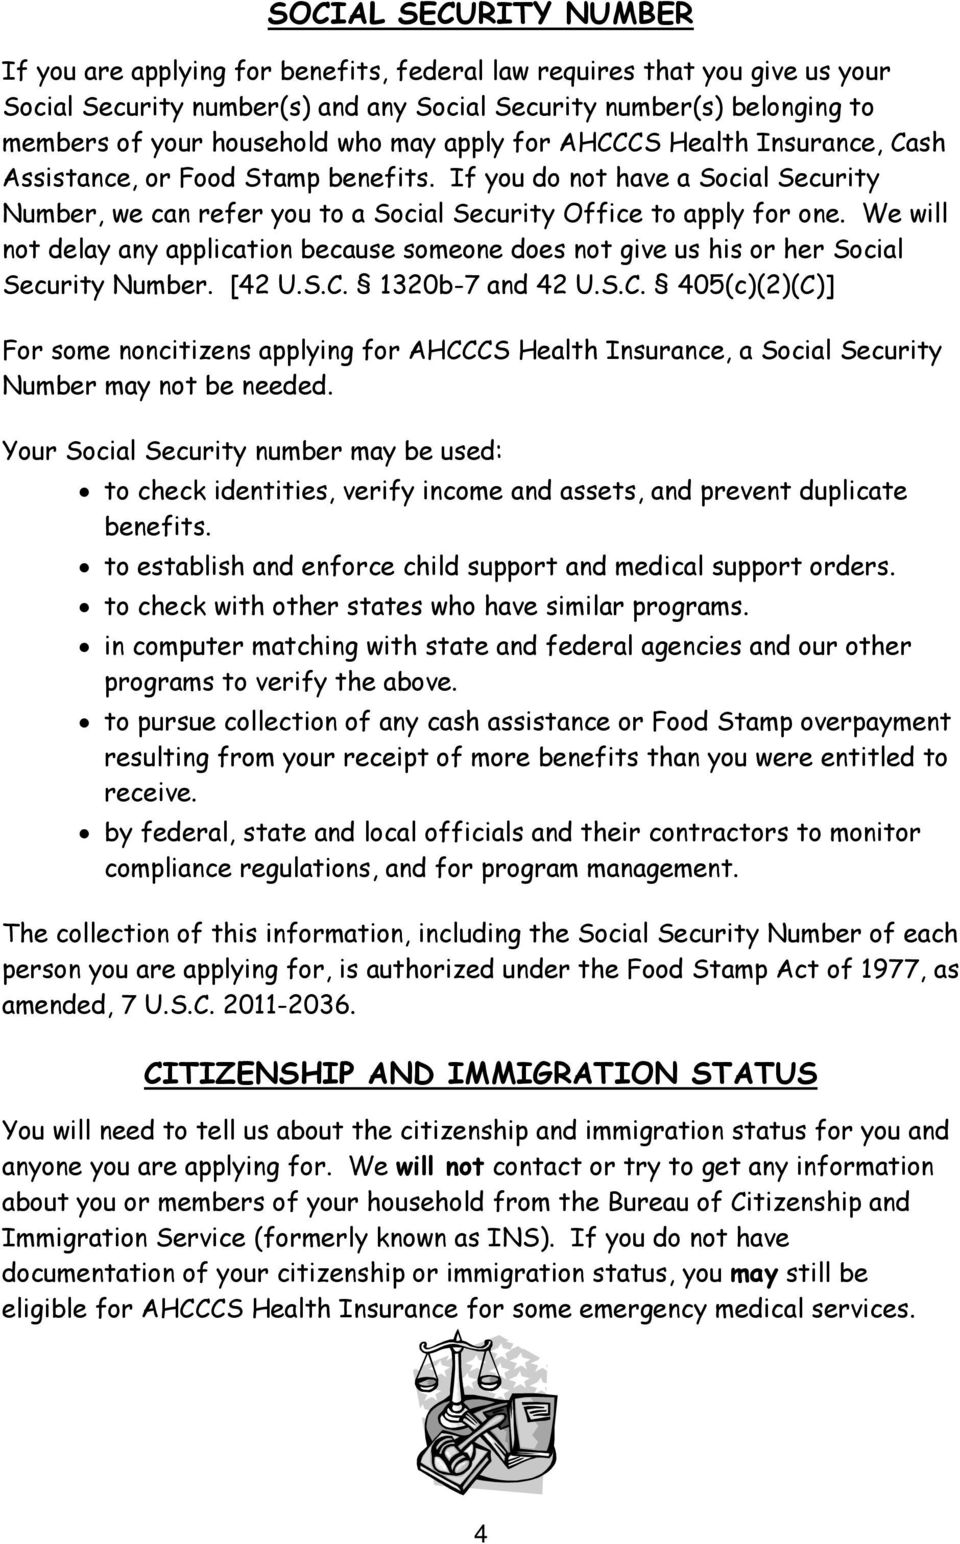 We will not delay any application because someone does not give us his or her Social Security Number. [42 U.S.C.